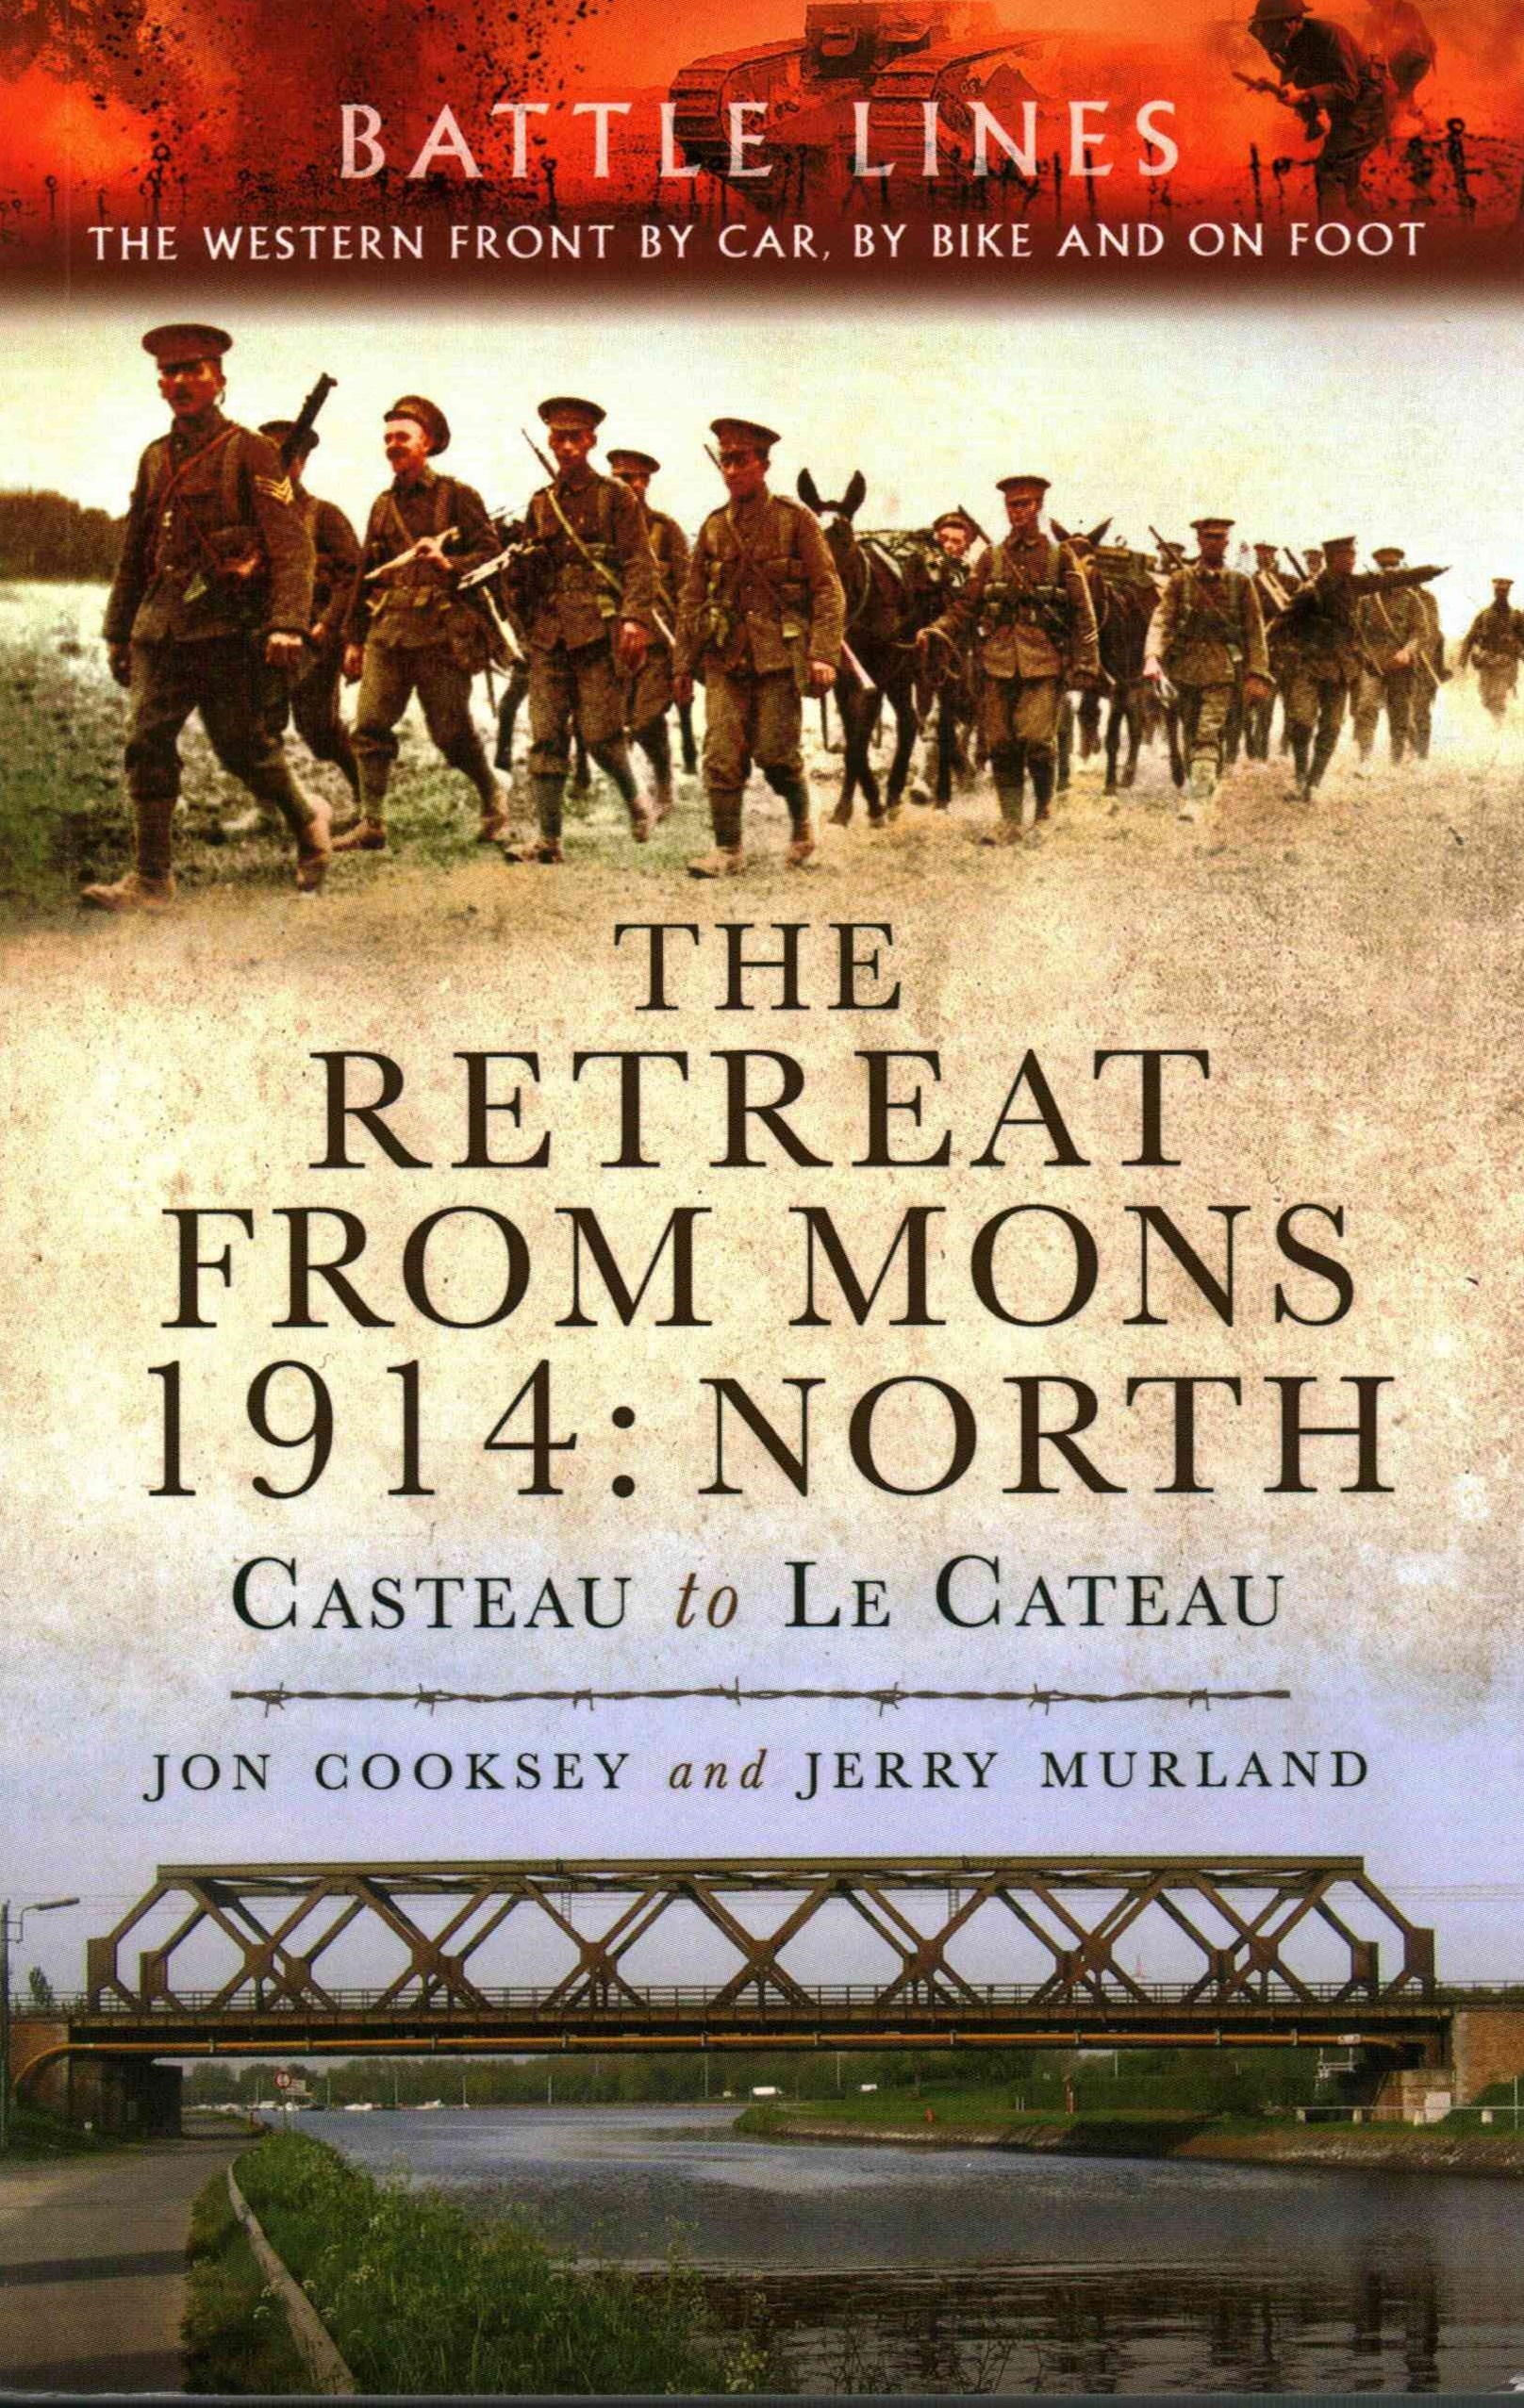 Retreat from Mons 1914: Casteau to Le Cateau (Battle Lines Series)